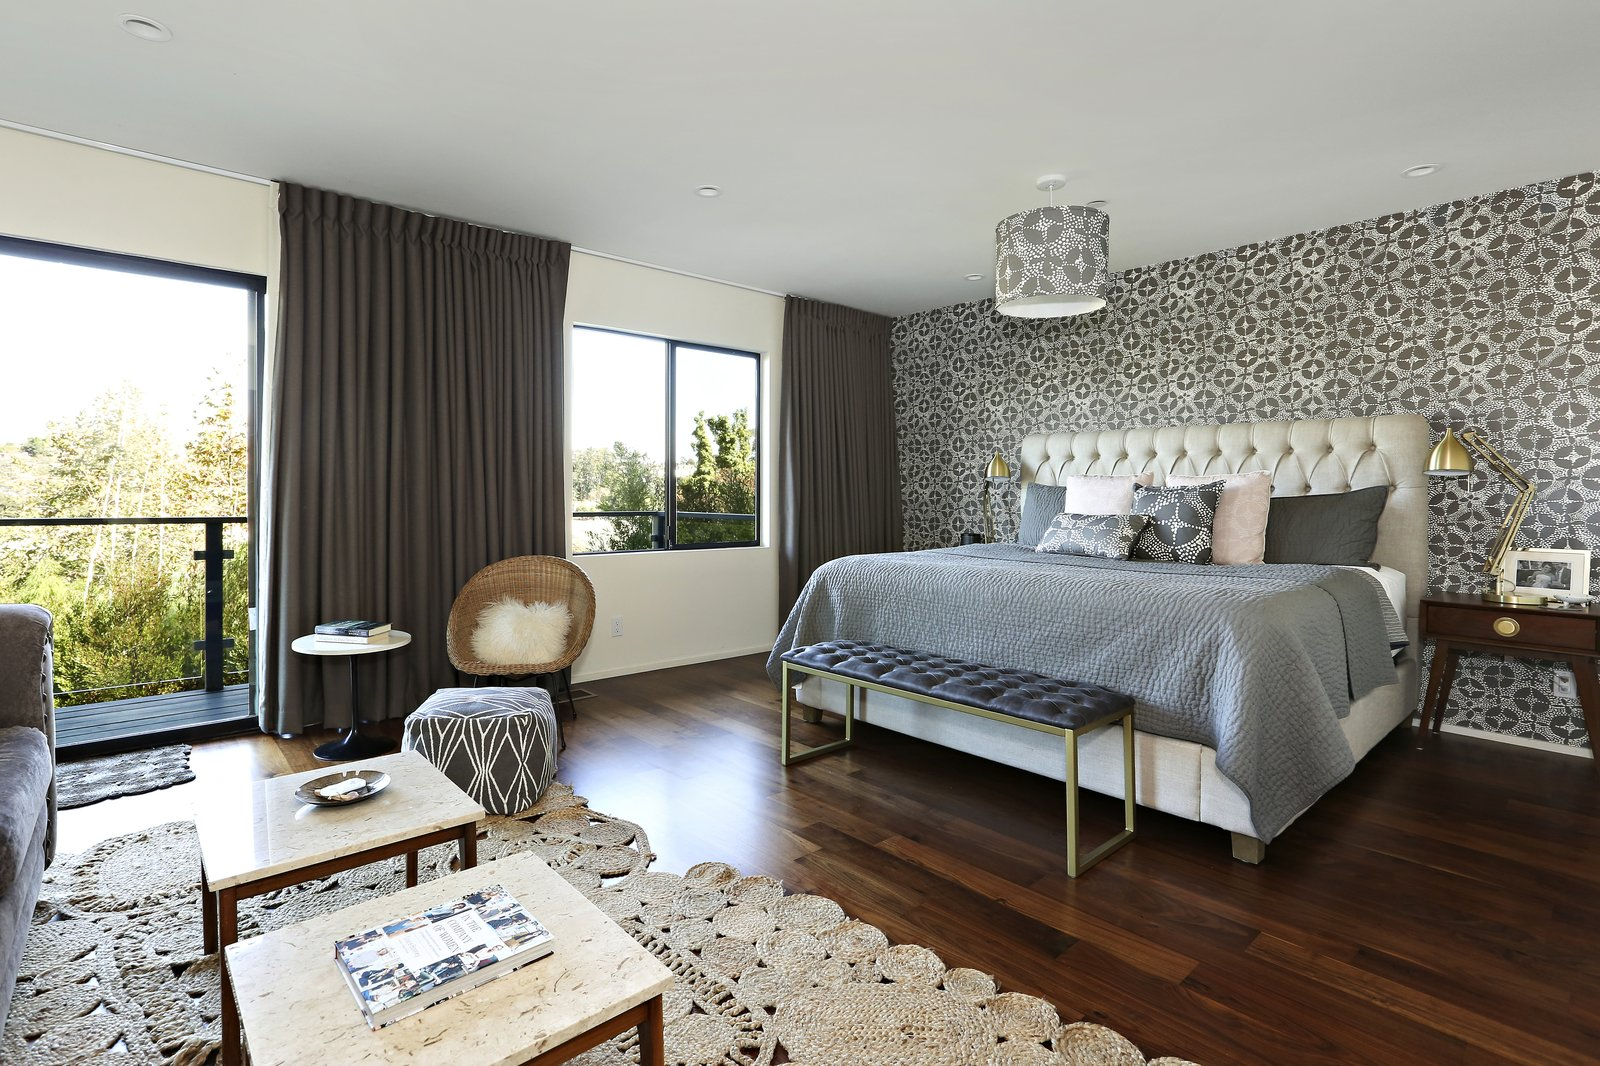 bedroom with ceiling pendant light with mosaic motif shade